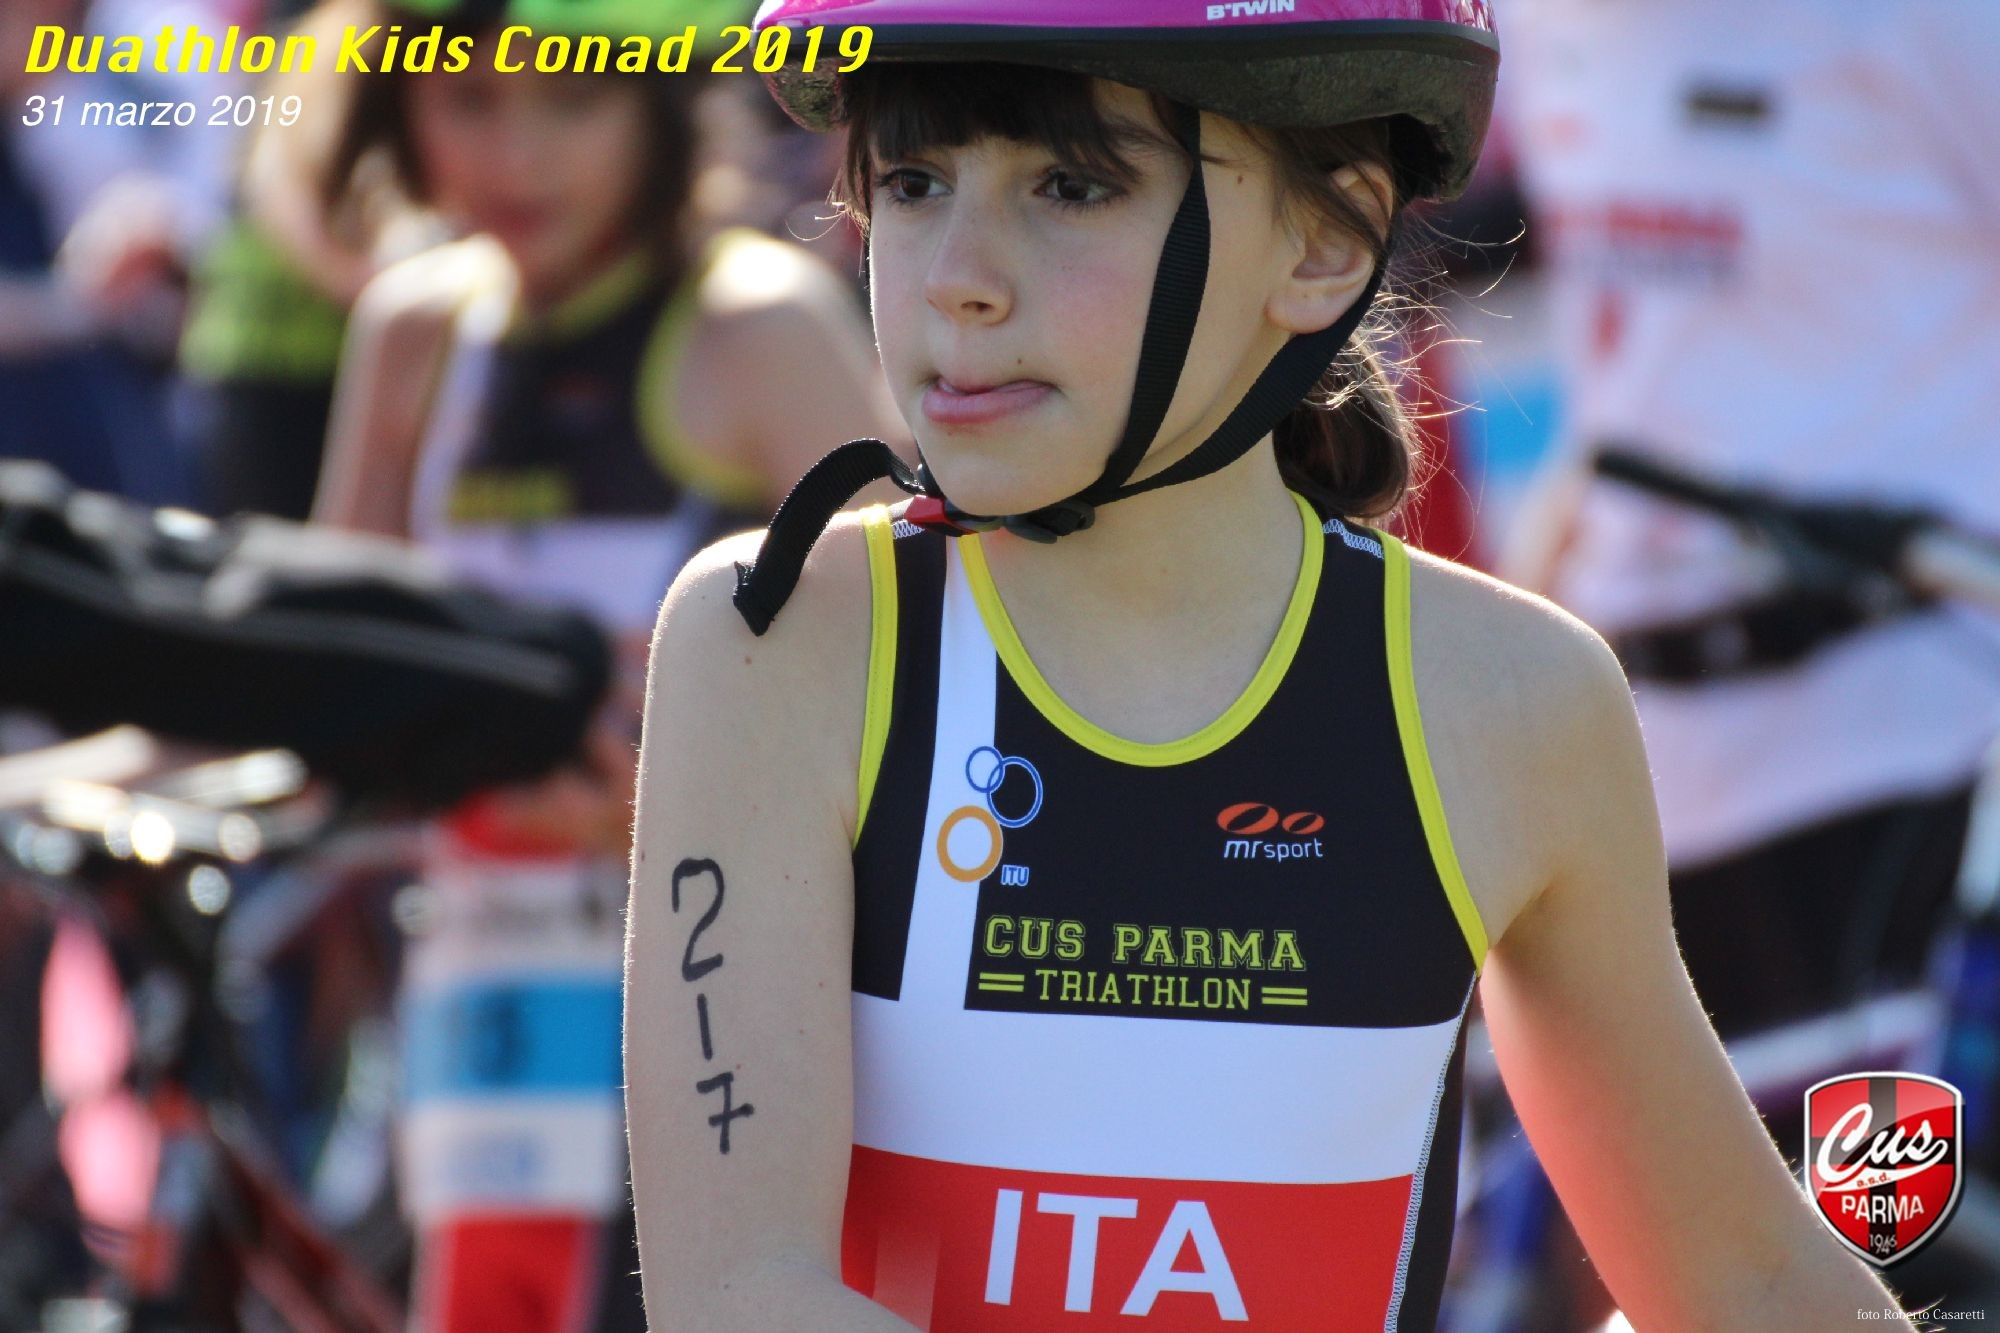 Calendario 2019 Triatlon Mejores Y Más Novedosos Triathlon – Cus Parma A S D Of Calendario 2019 Triatlon Más Actual Triathlon – Cus Parma A S D